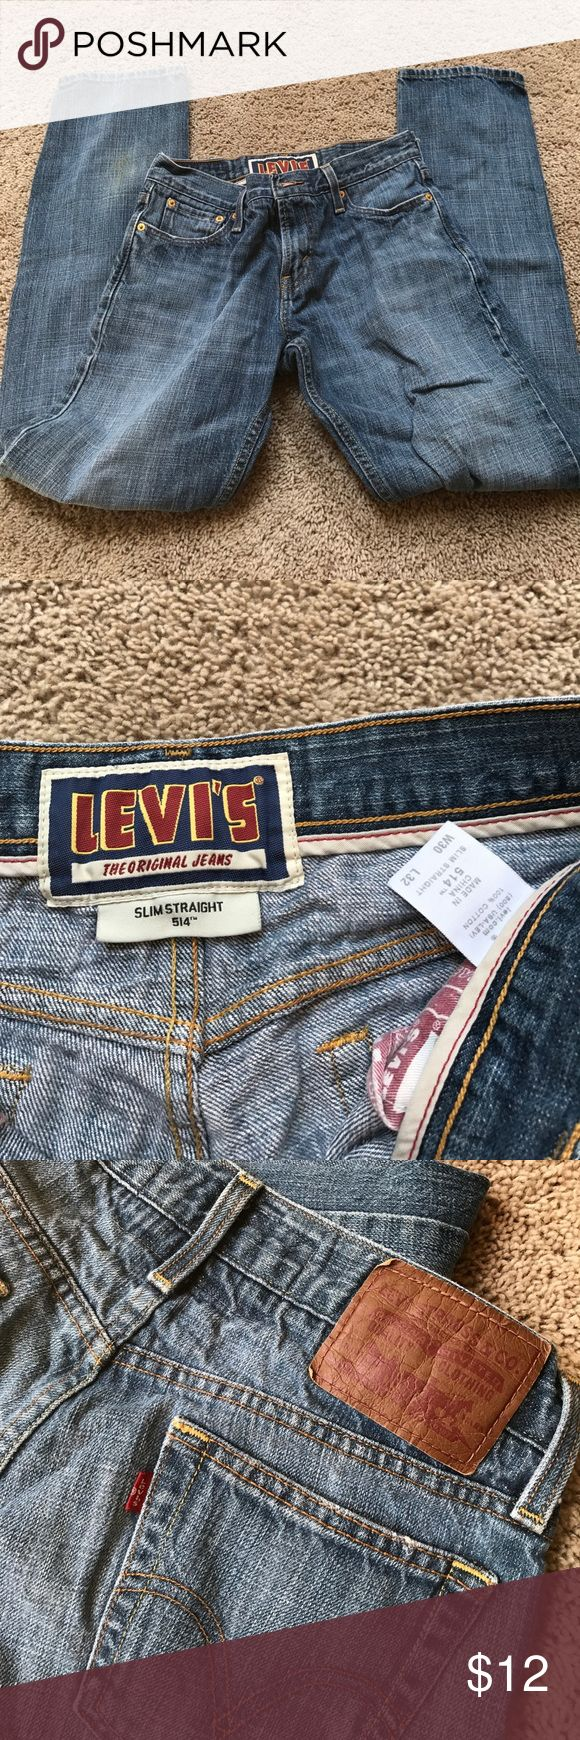 Levi's 514 jeans 30x32 Levi's 514 jeans 30 waist 32 length. Good condition except for a mark/stain on back of leg shown in last picture. Levi's Jeans Straight